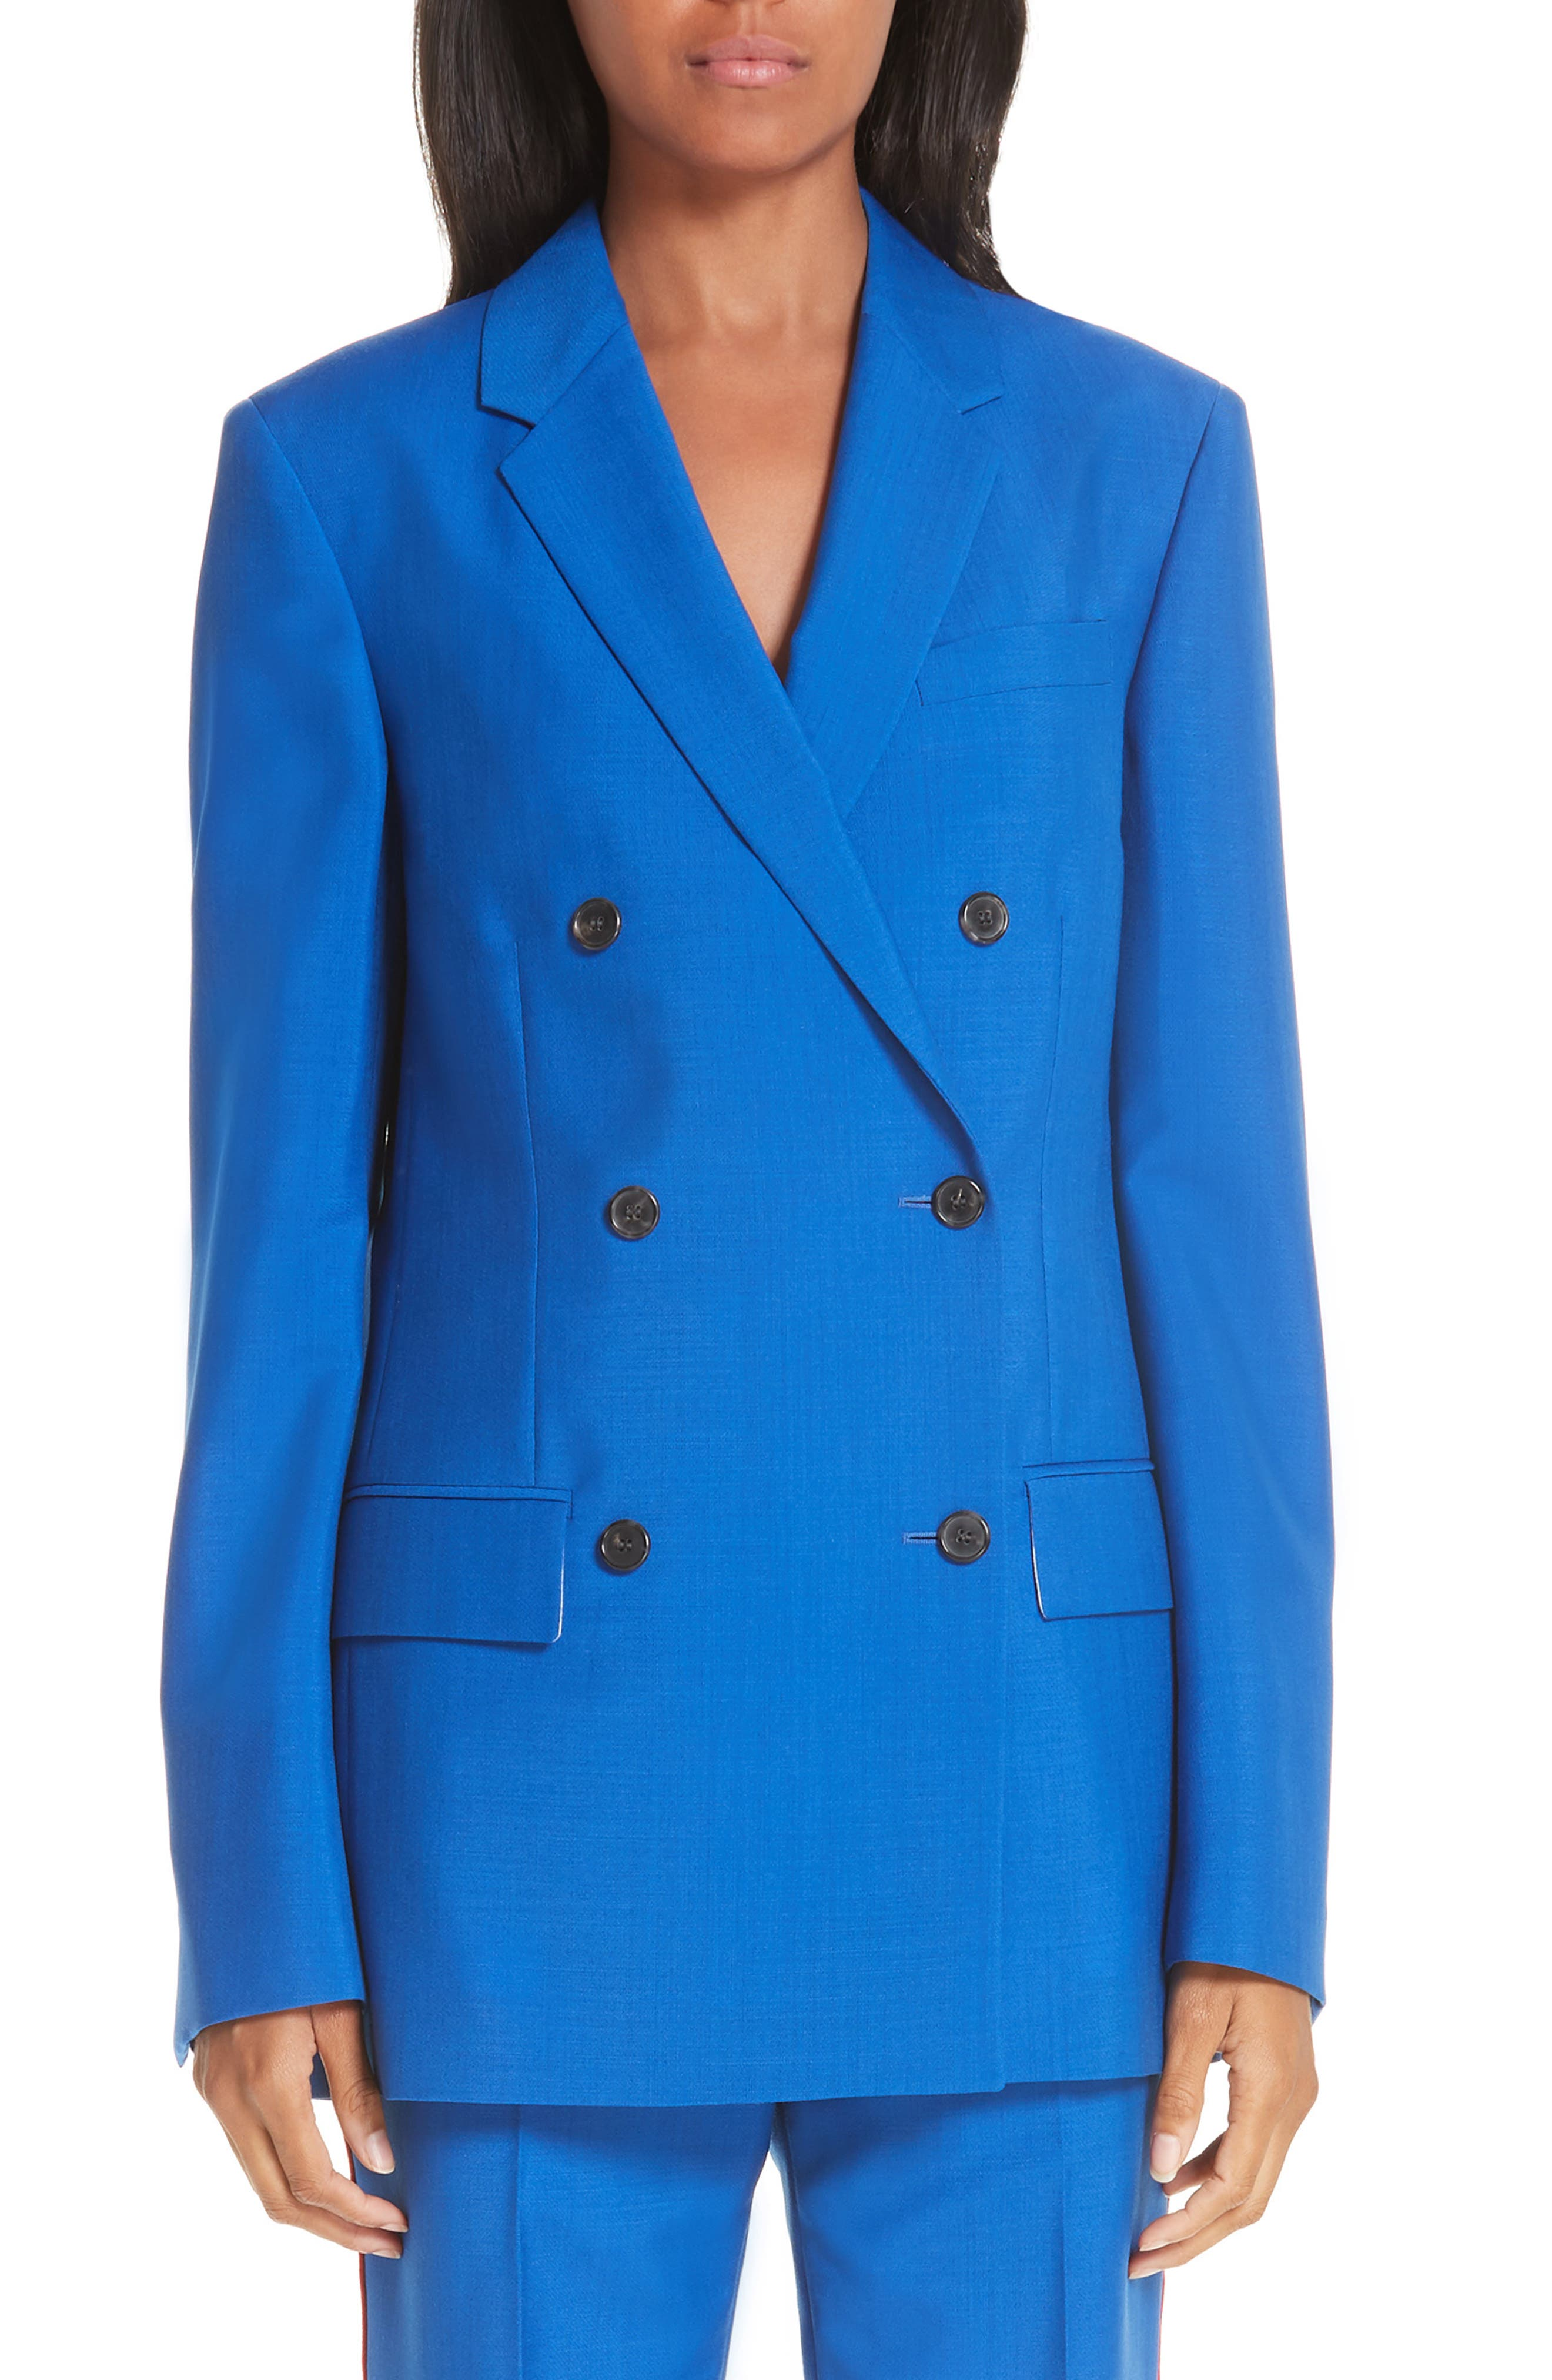 CALVIN KLEIN 205W39NYC Mohair & Wool Double Breasted Blazer, Main, color, BRIGHT BLUE